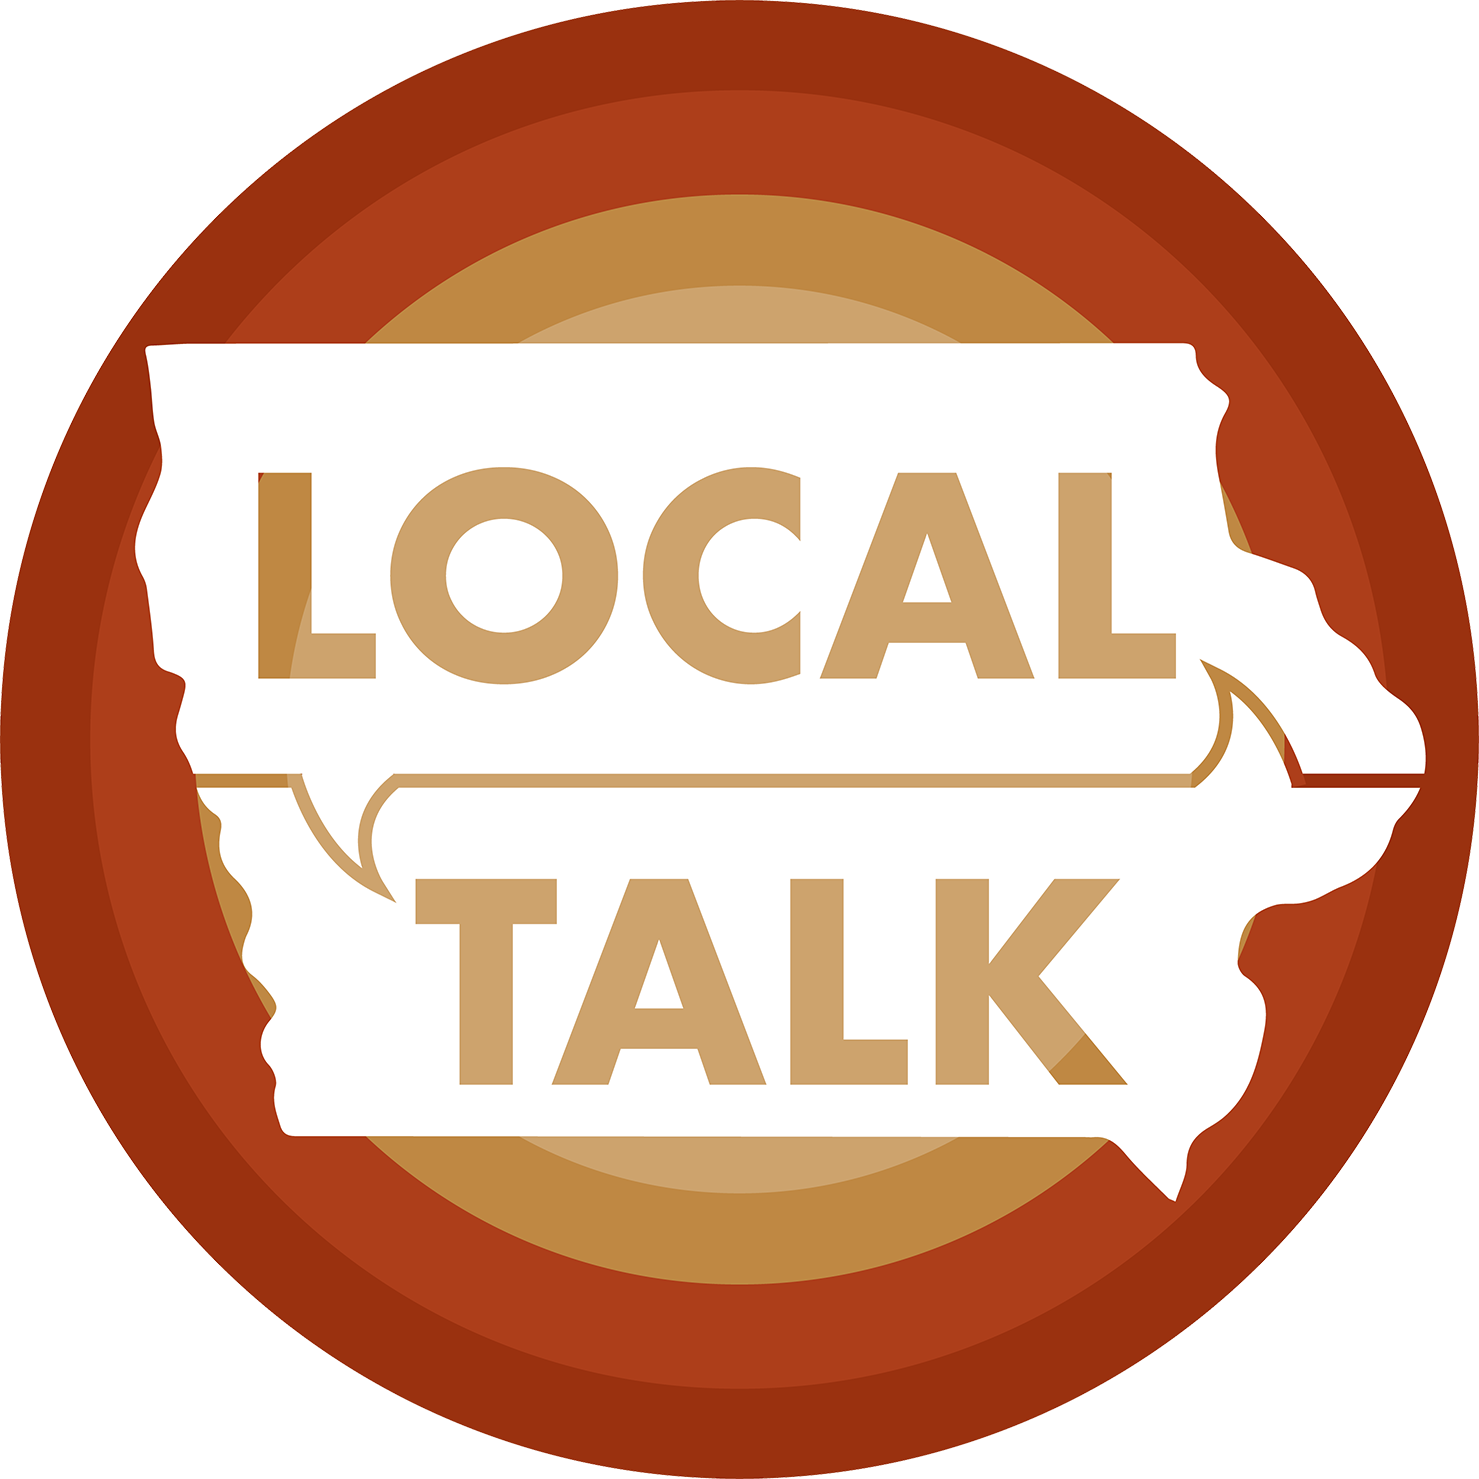 Local talk khoi is. Heartbeat clipart poor health